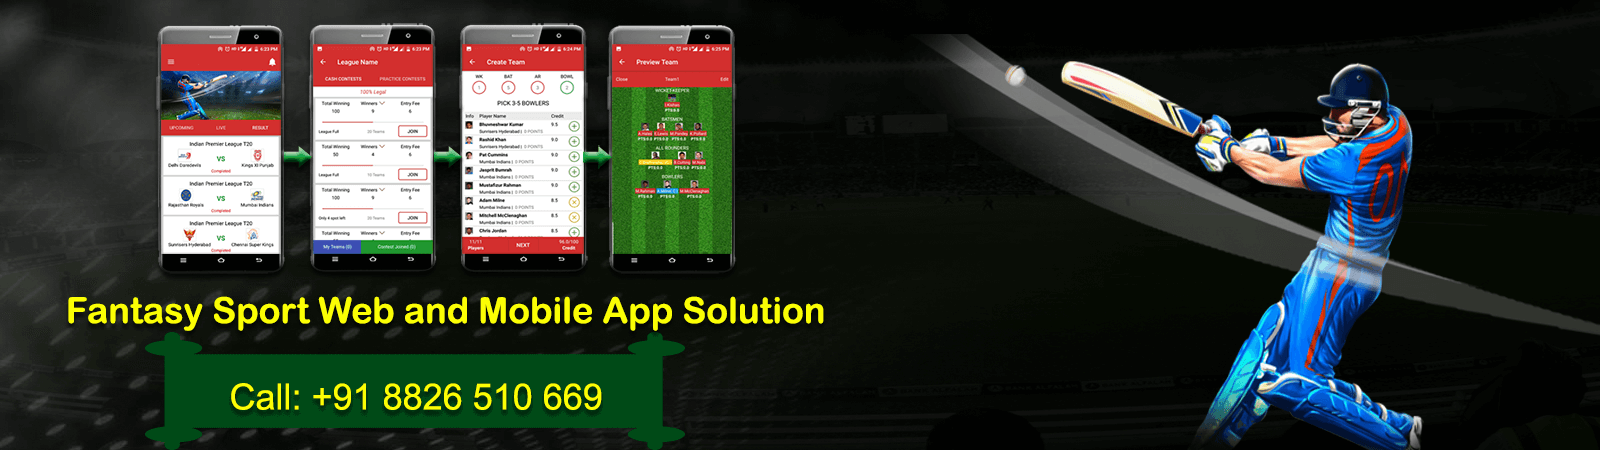 Mobile Apps Development Company | Android & iOS Apps Development